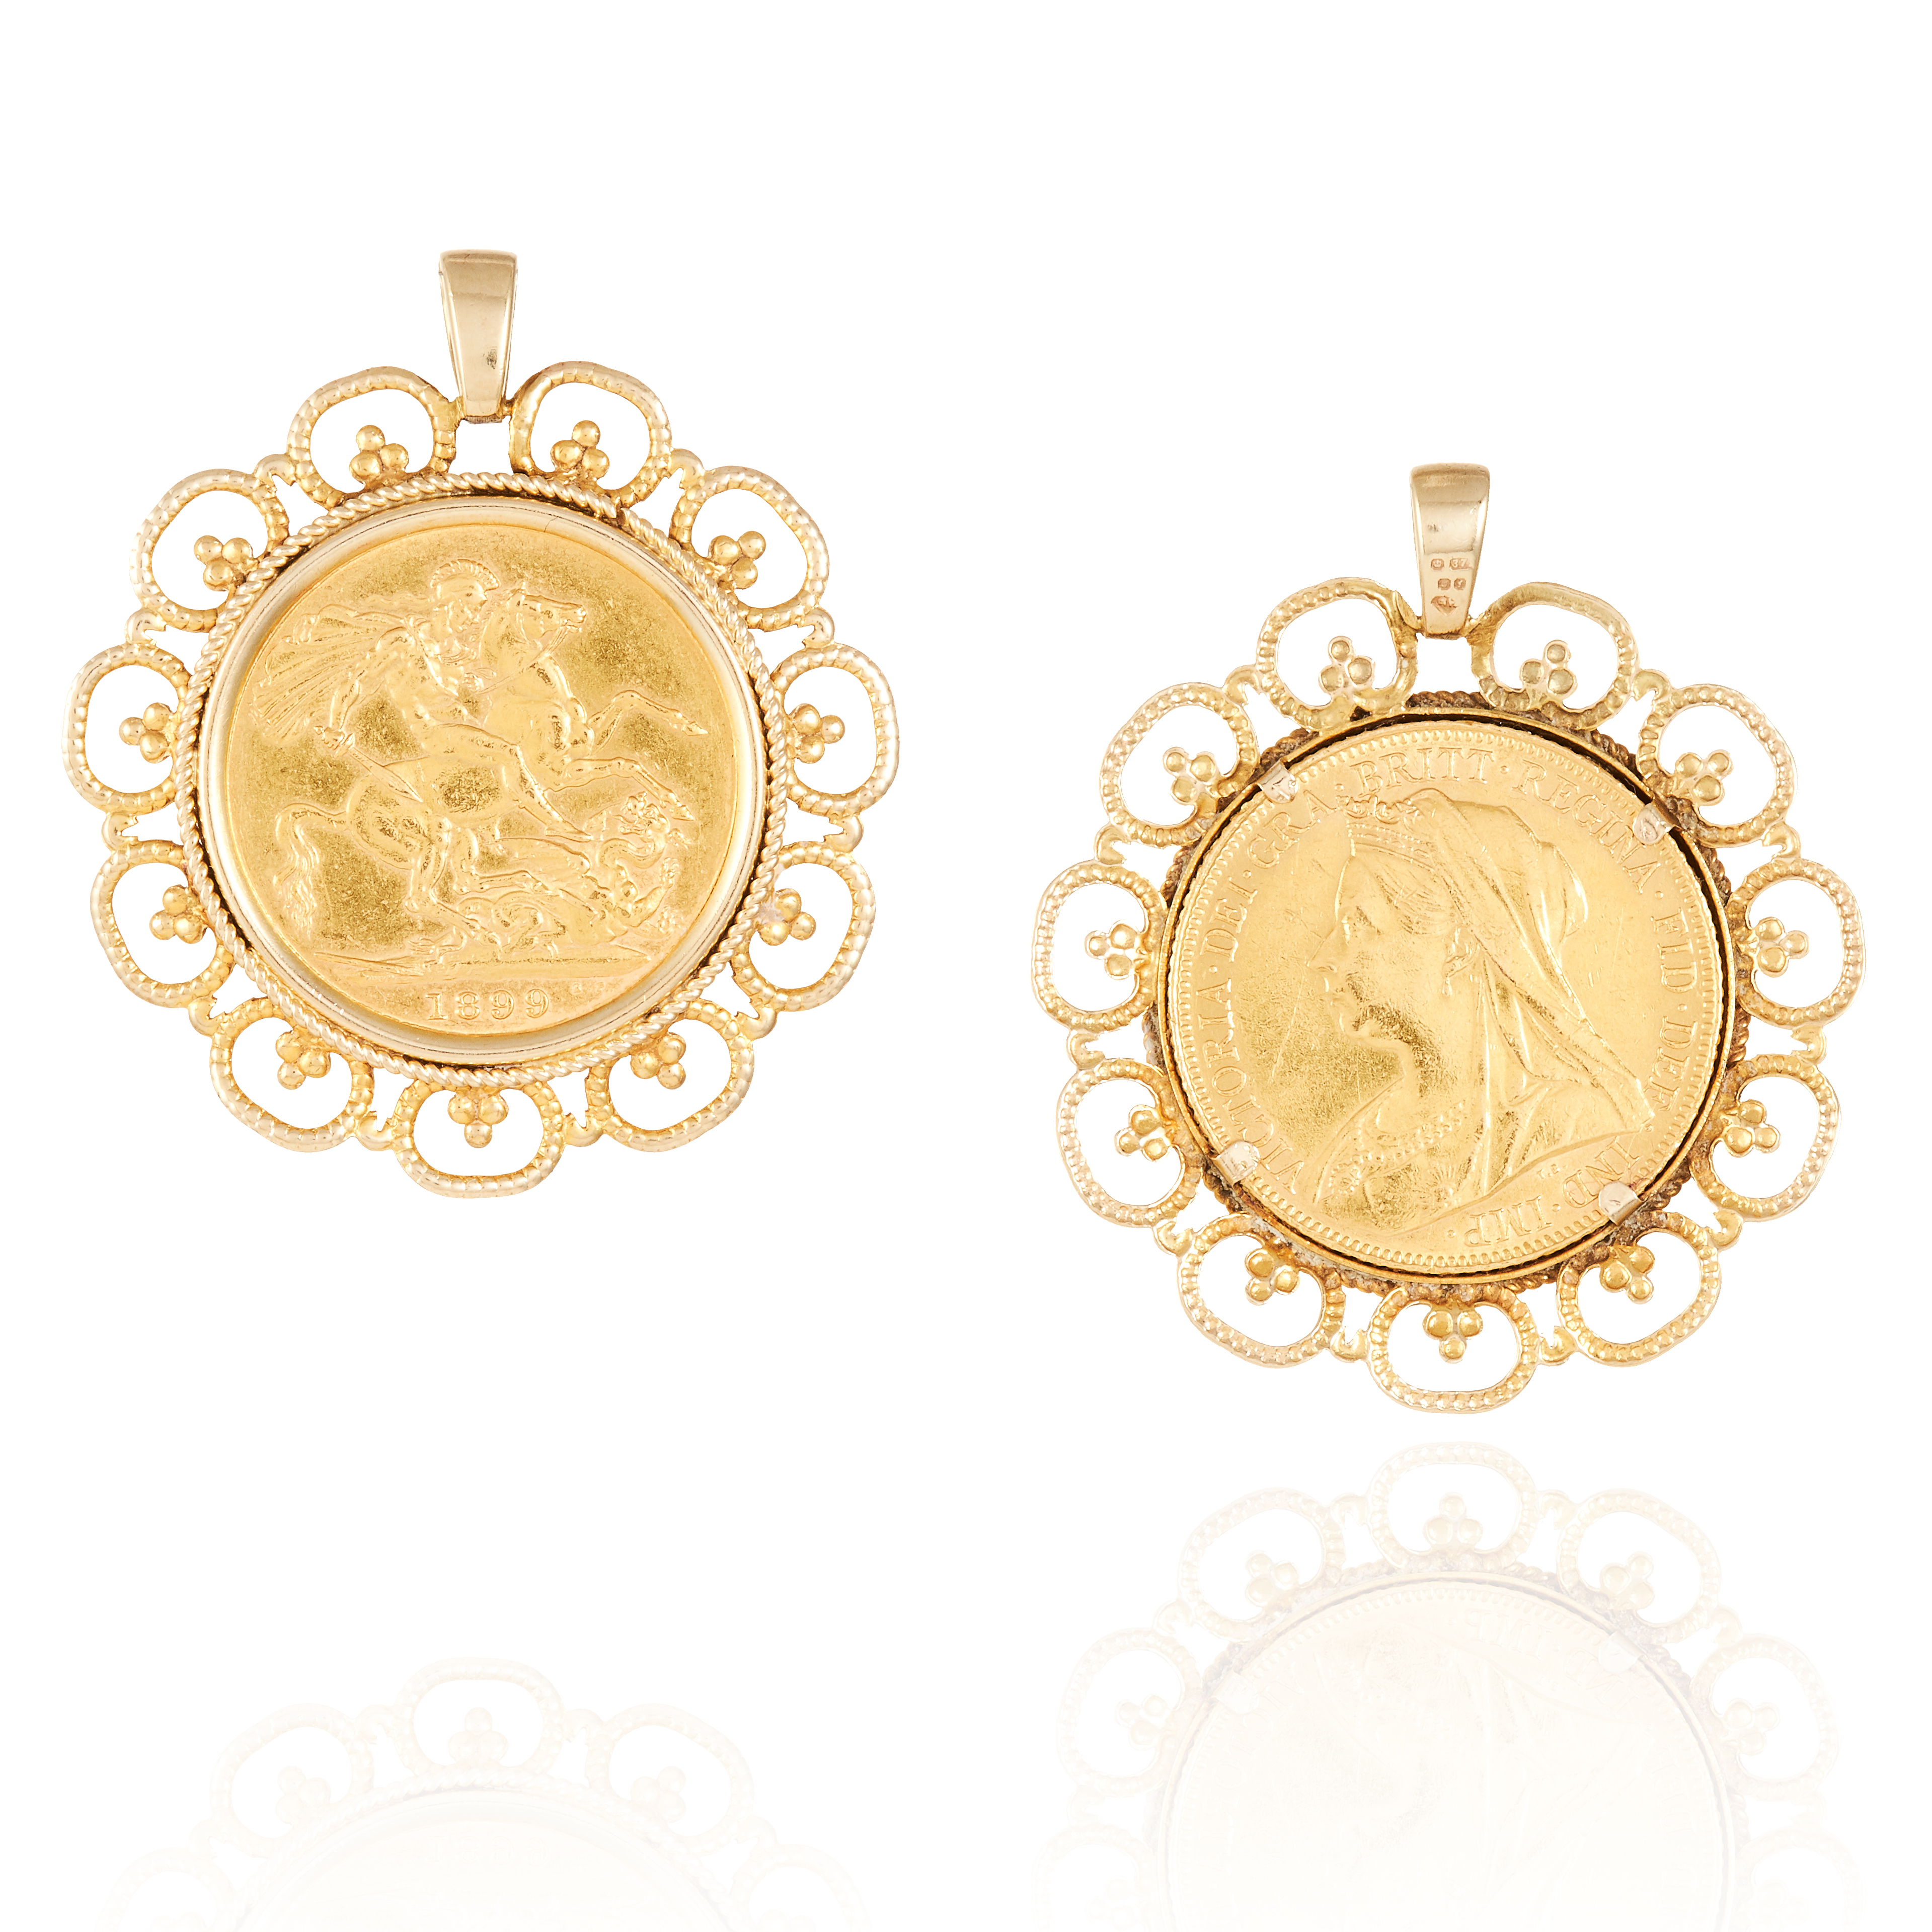 Los 56 - AN ANTIQUE VICTORIAN FULL SOVEREIGN PENDANT in 22ct yellow gold, the Victorian full sovereign in a